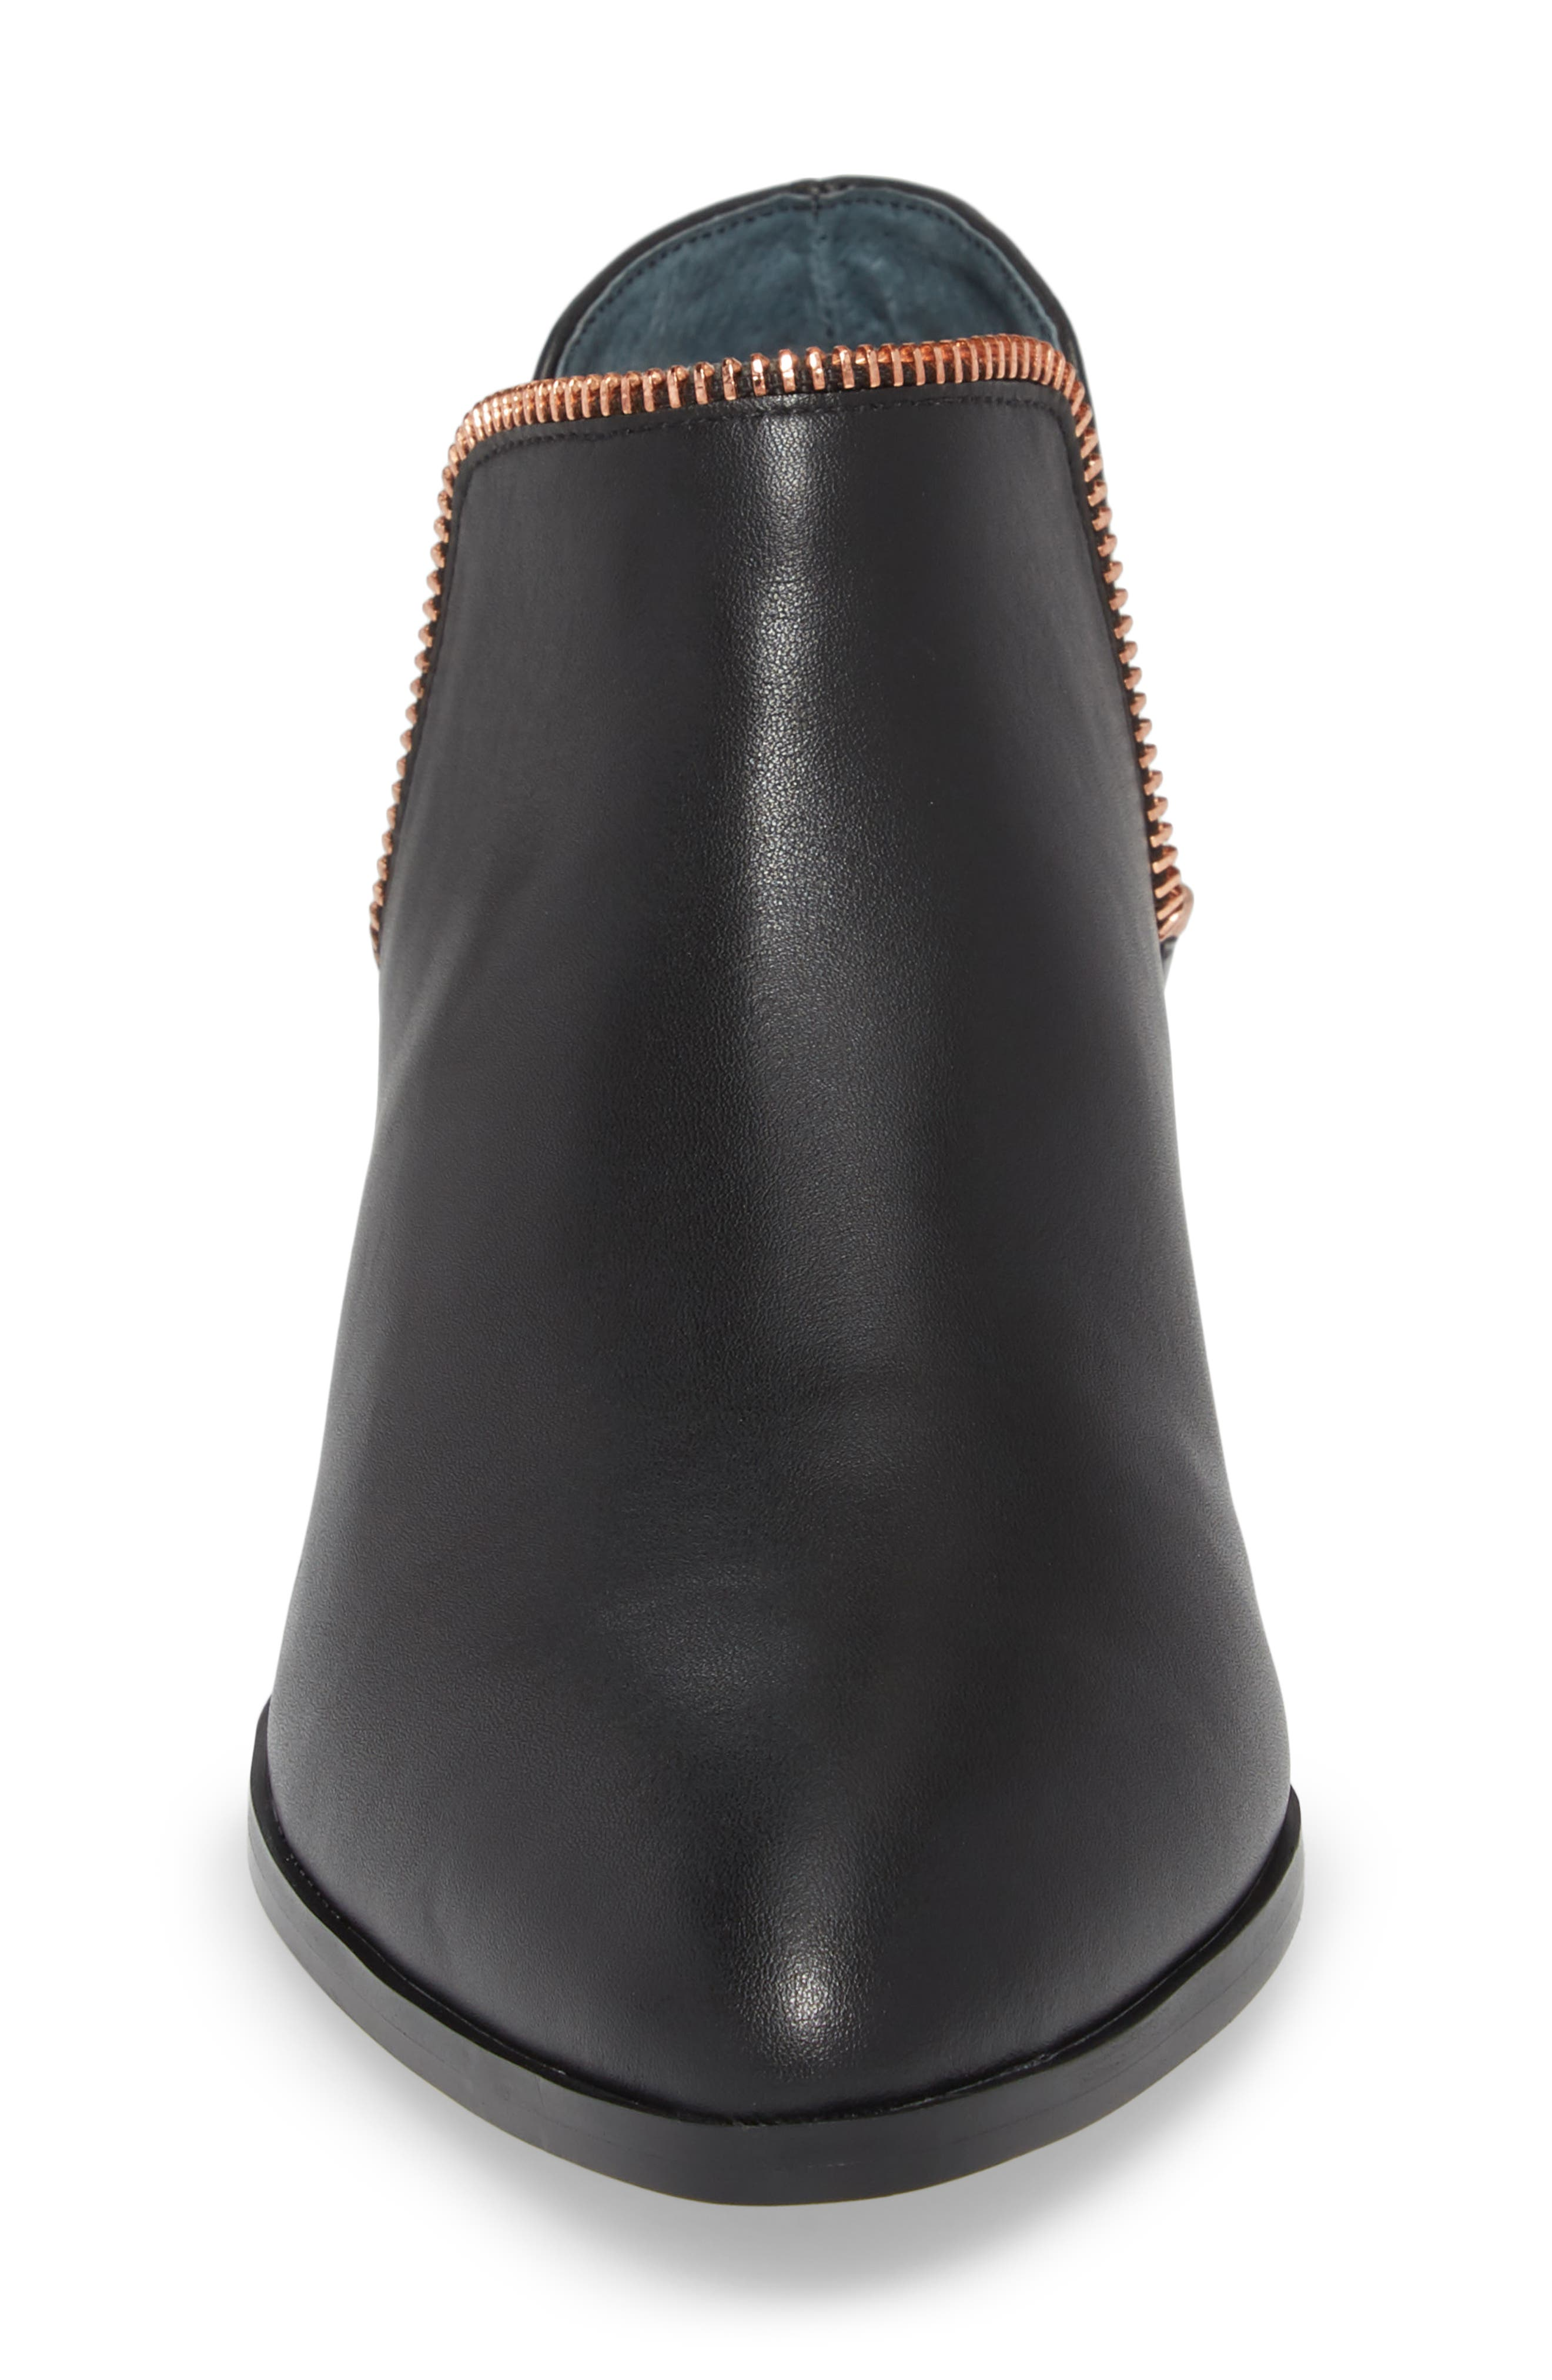 Piper Bootie,                             Alternate thumbnail 4, color,                             Black Leather/ Rosegold